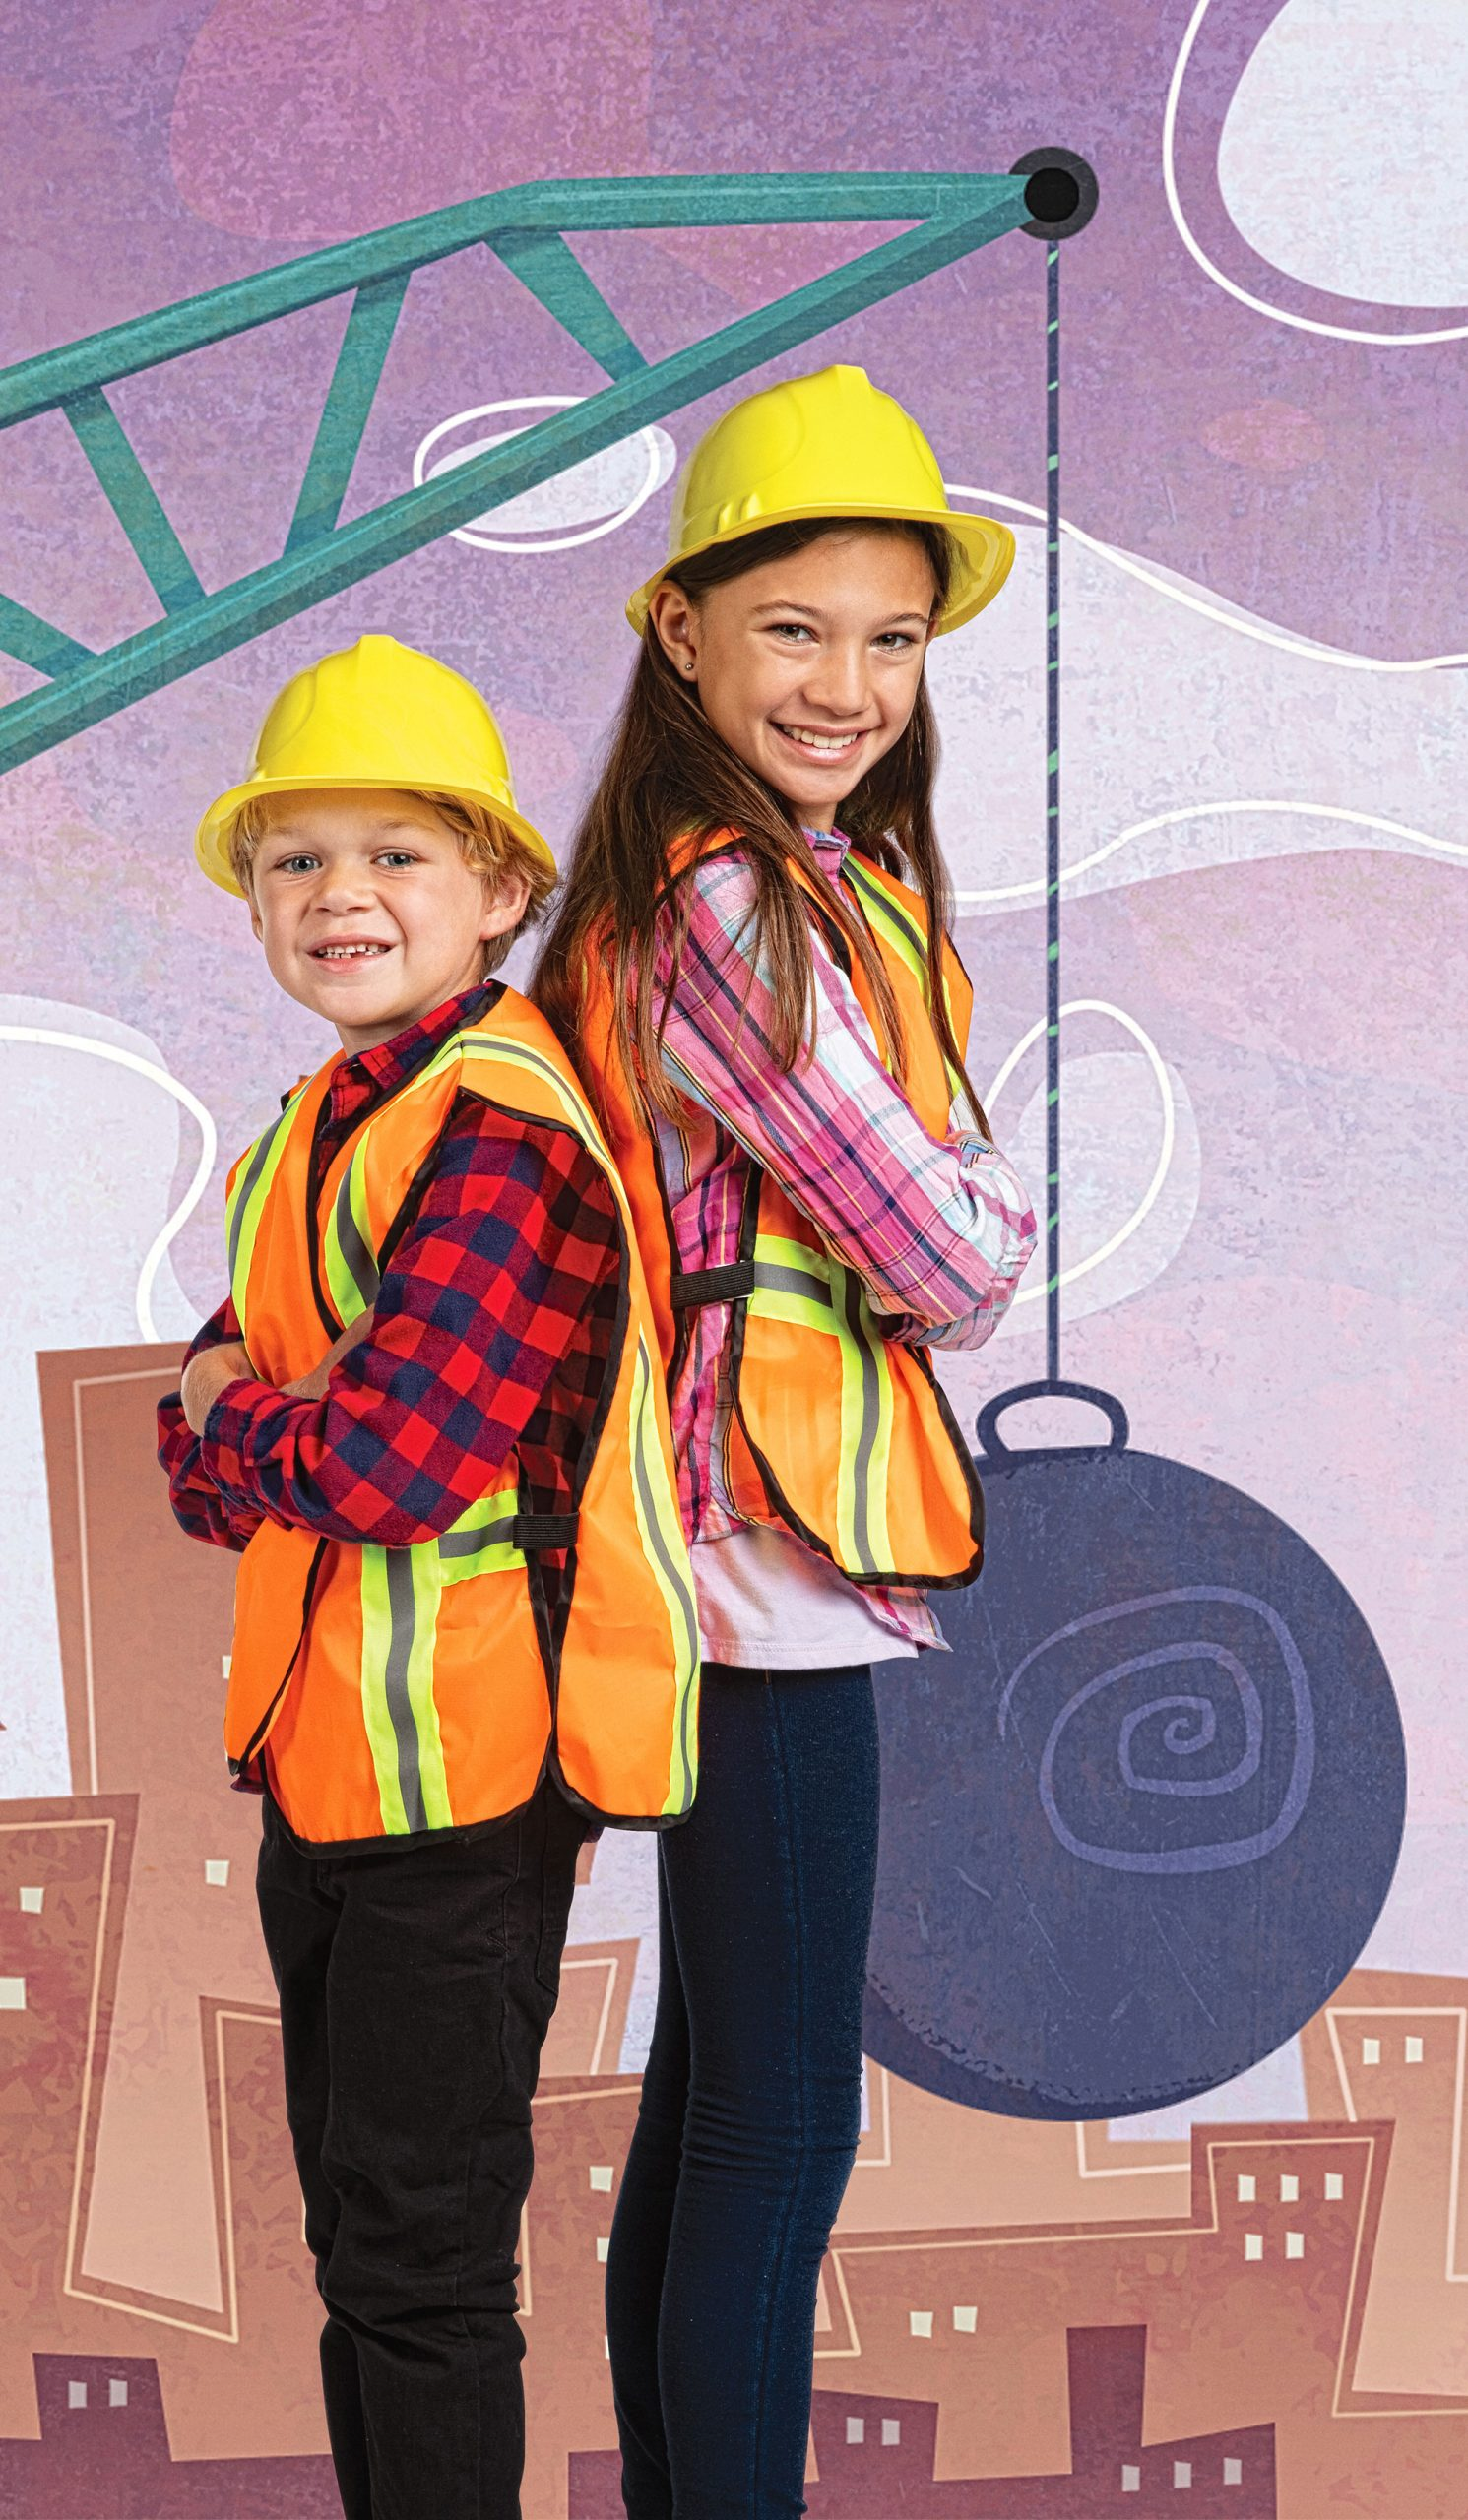 Kids Photoshopped into cartoon construction background by ODonnell Photograf